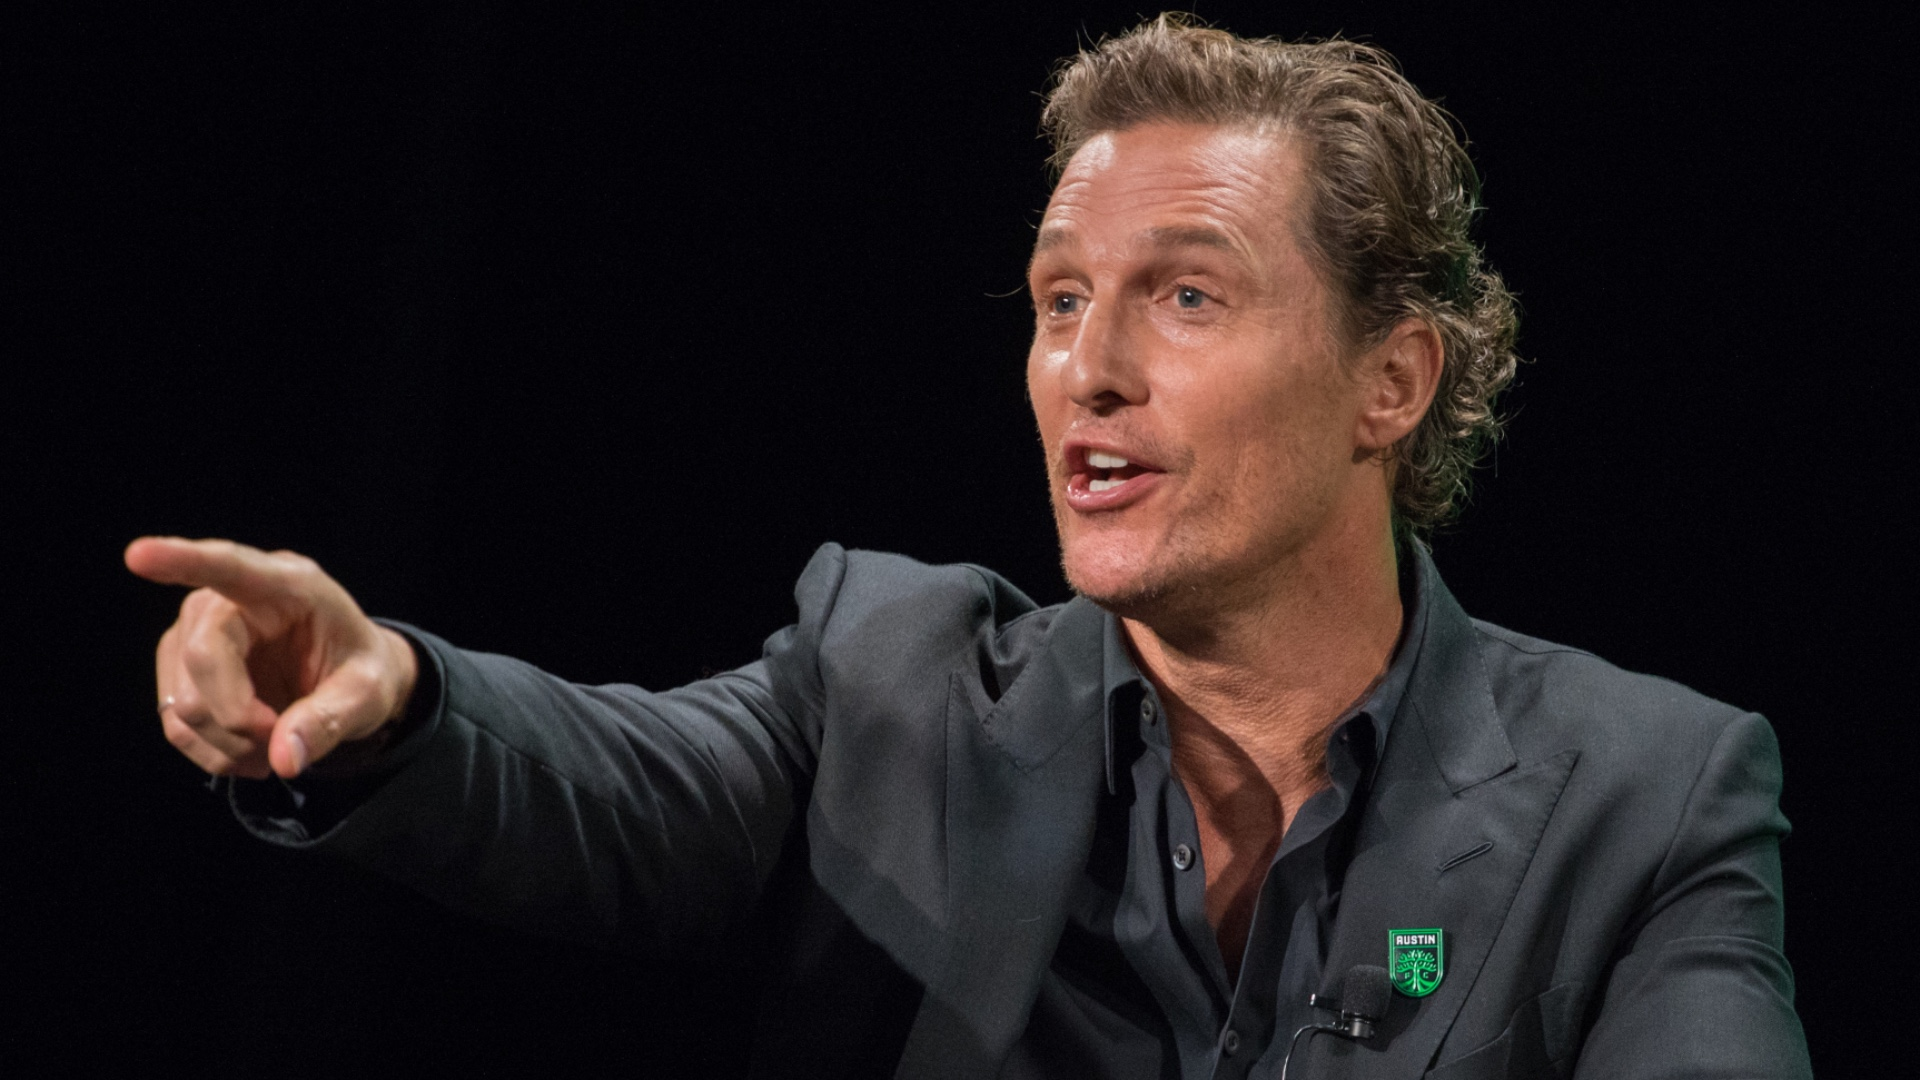 If all MLS owners were like Matthew FC McConaughey Austin FC investors, they would all be fans